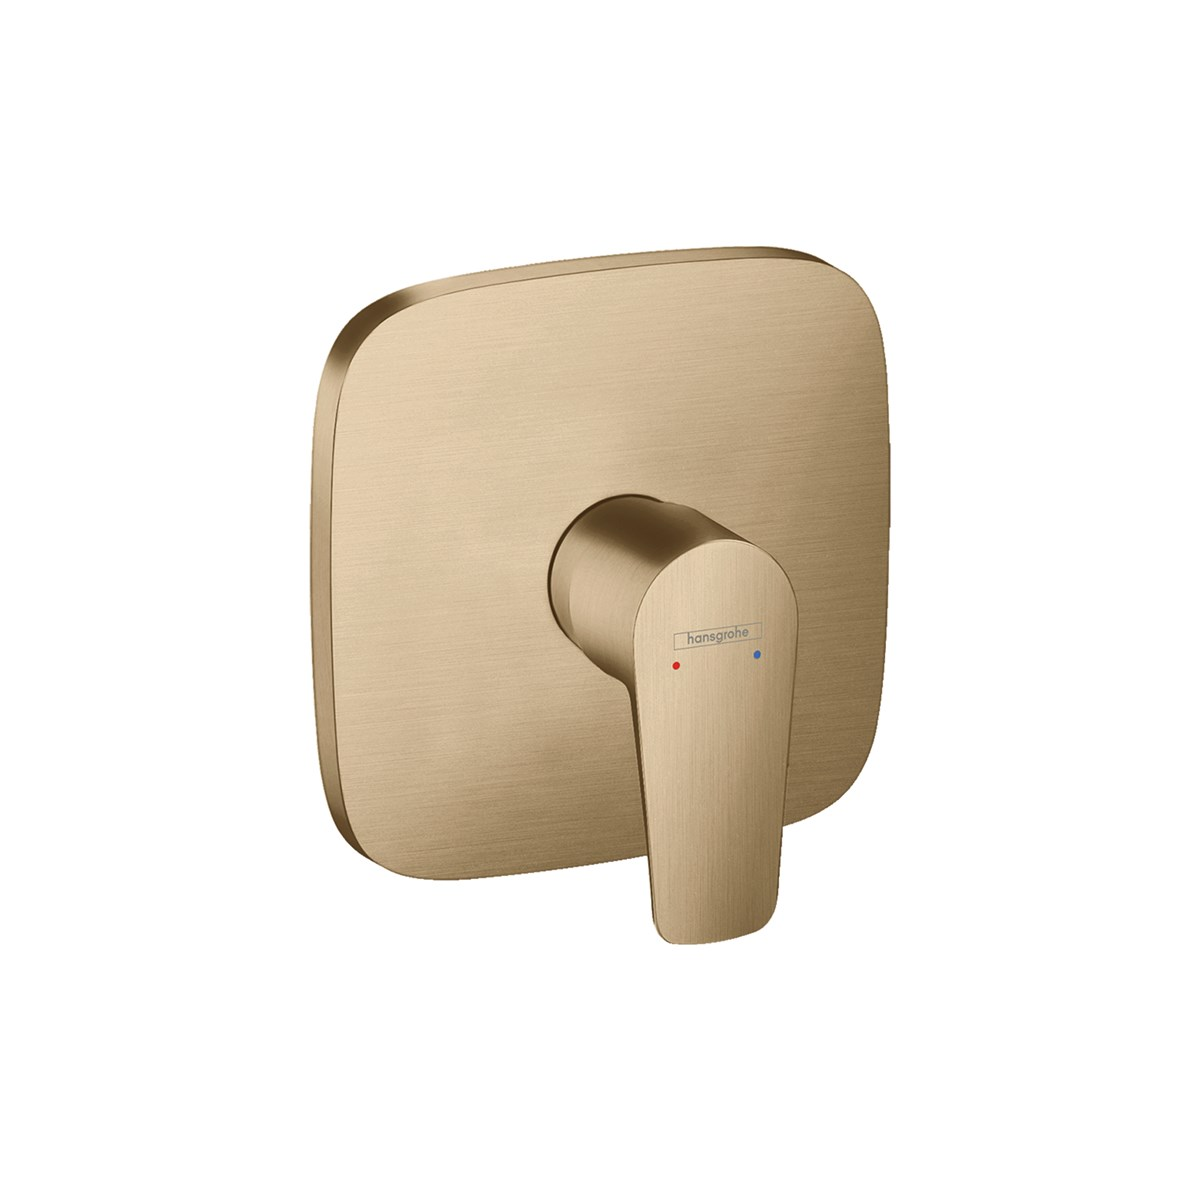 Hansgrohe-Talis-E-Shower-Mixer-Concealed-71765000-Matisse-1